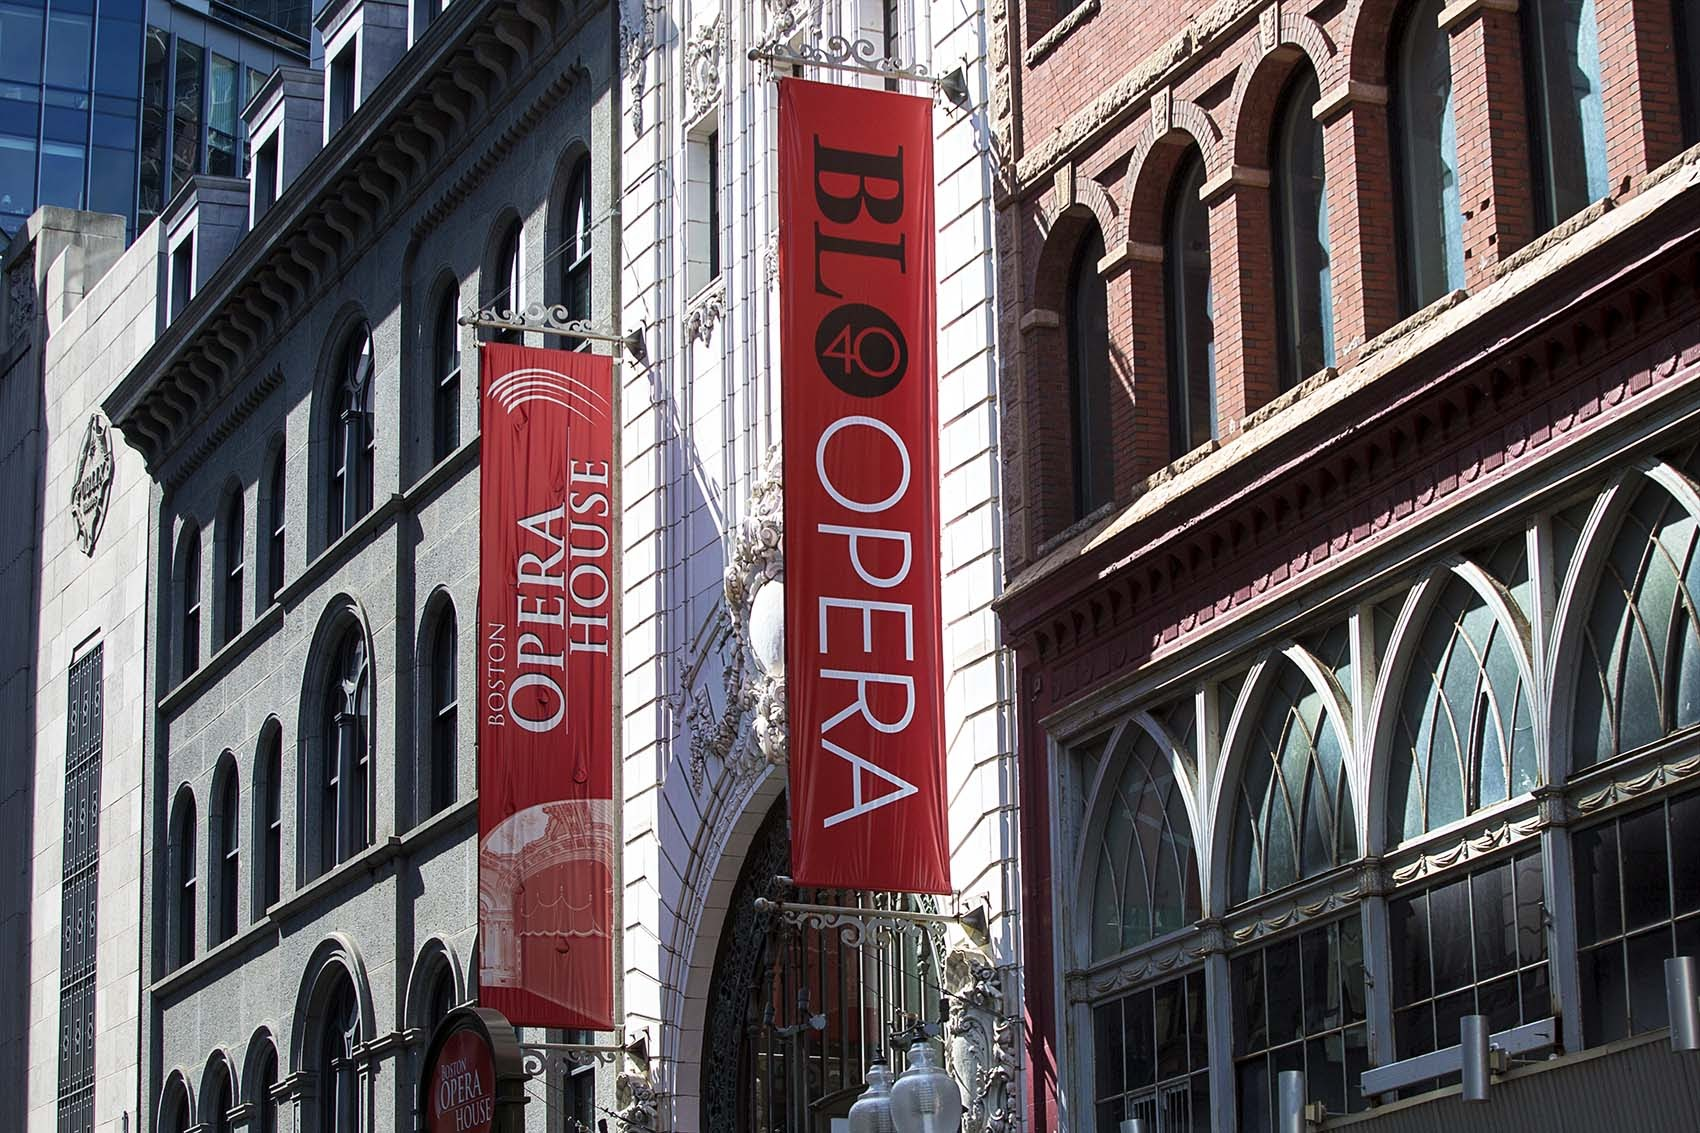 Banners for the Boston Lyric Opera hang outside the Boston Opera House last year. (Jesse Costa/WBUR)